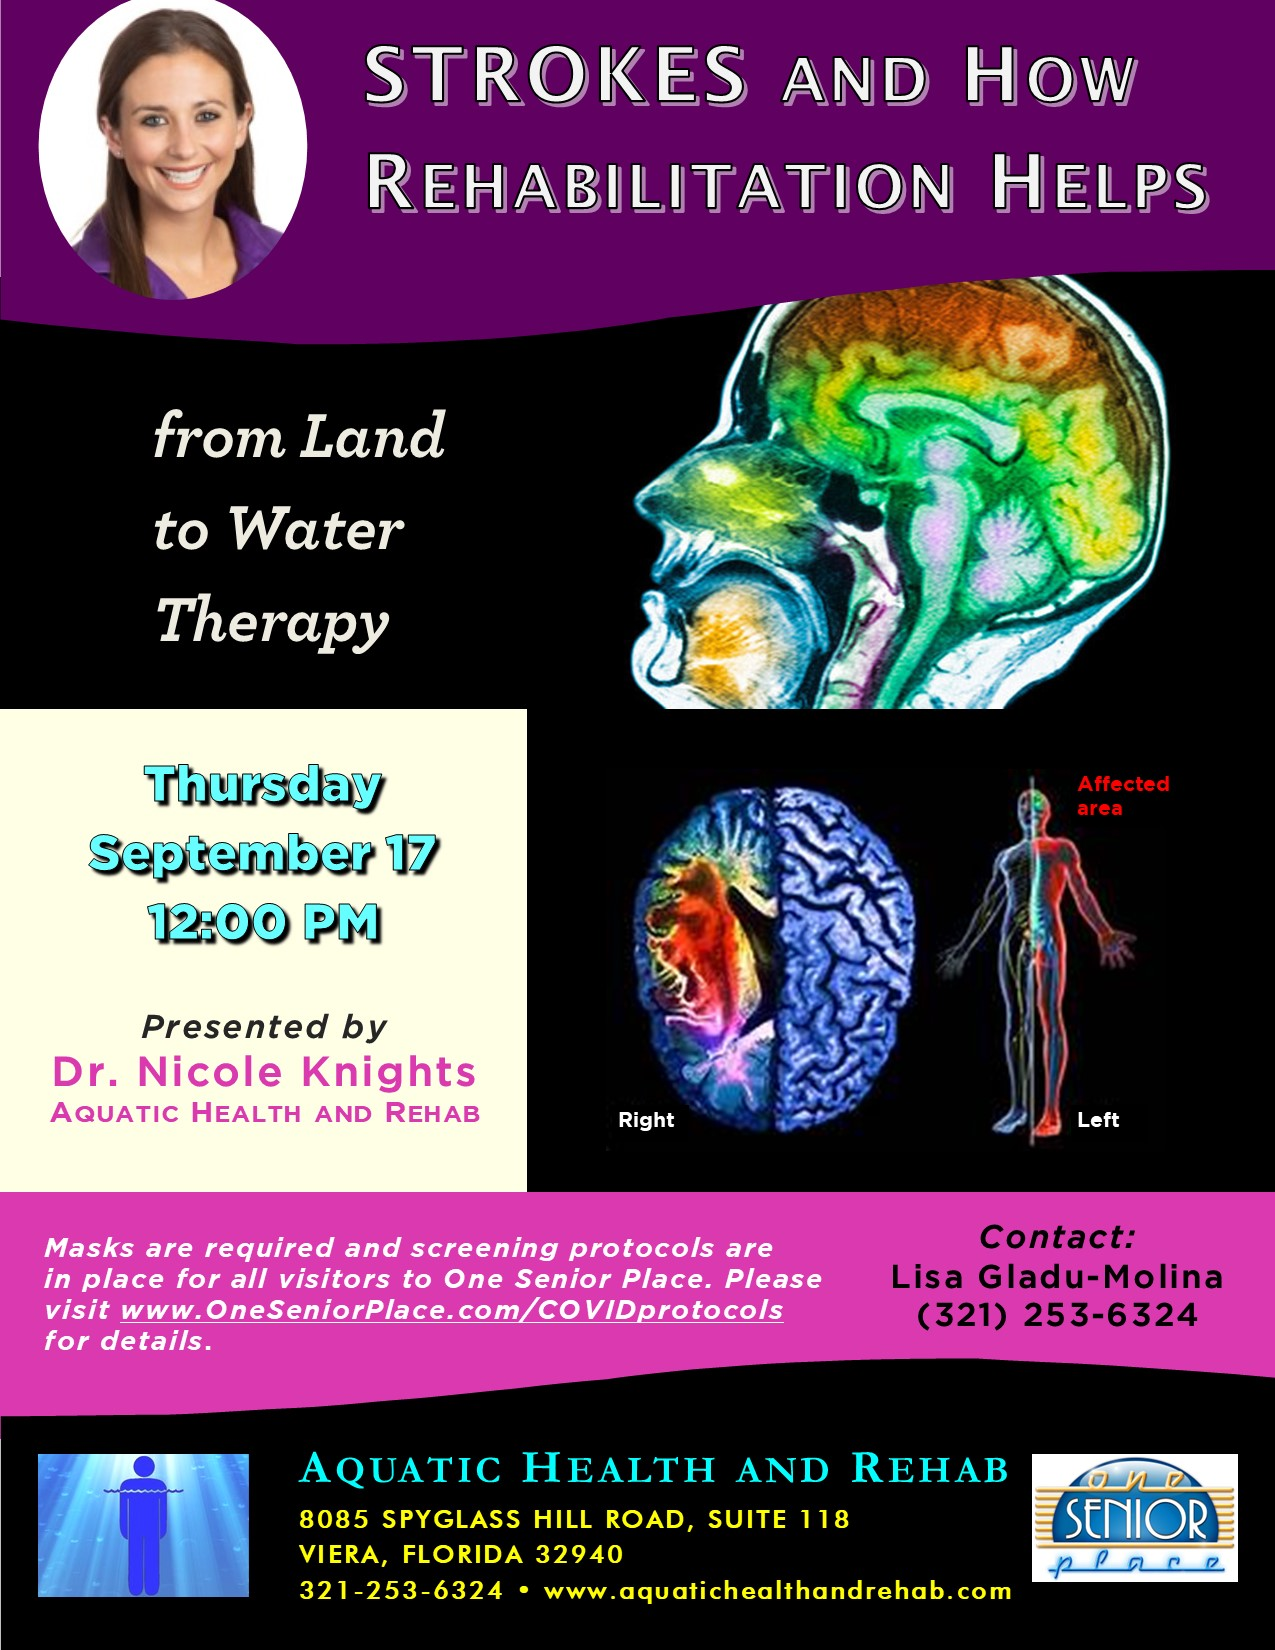 ***CANCELLED***STROKES and How Rehabilitation Helps presented by Dr. Nicole Knights with Aquatic Health and Rehab